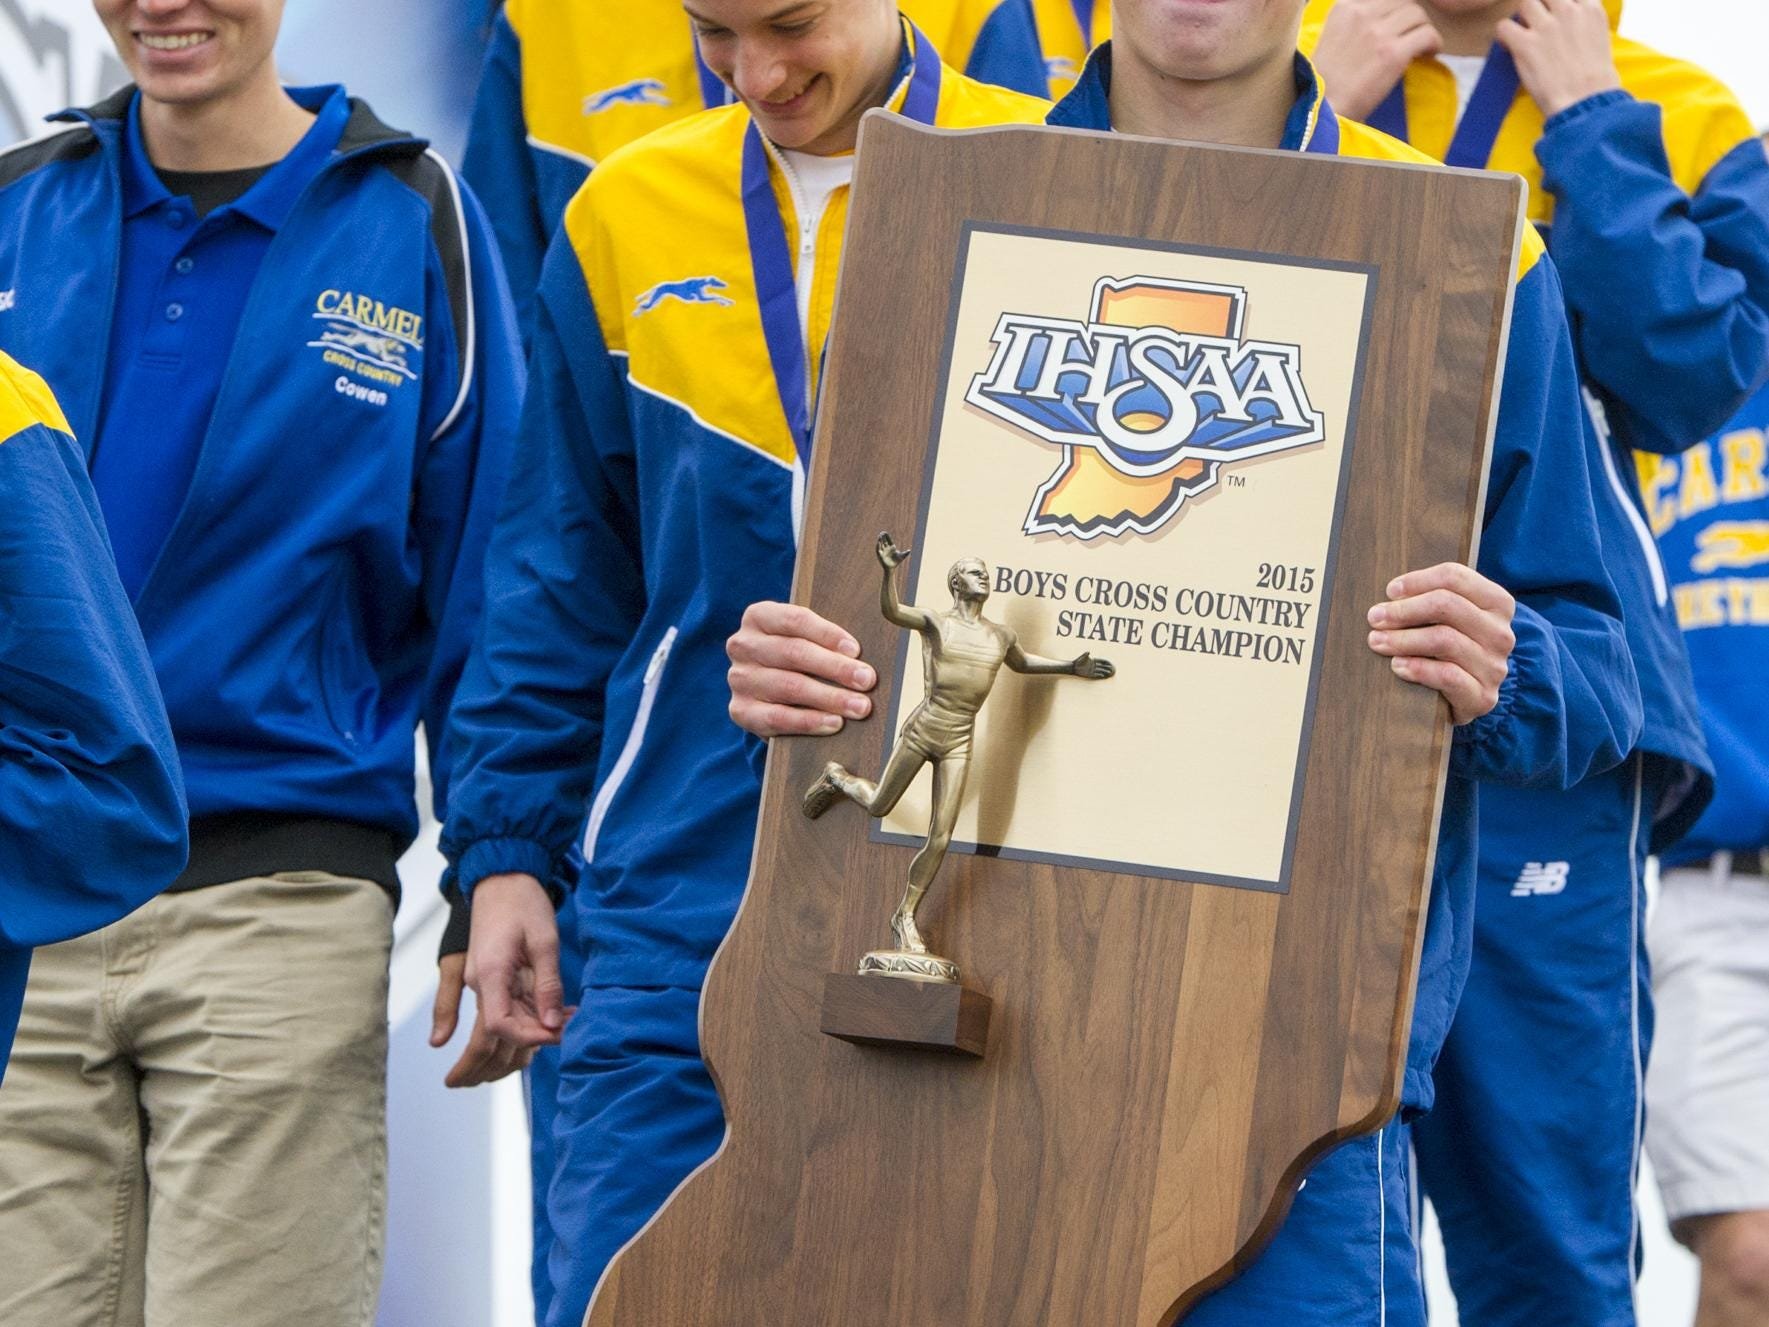 Carmel High School senior Ben Veatch (64) carries the championship trophy off the stage after the awards of the IHSAA Cross Country State Championship race at LaVern Gibson Championship Cross Country Course in Terre Haute, Ind. Saturday, Oct. 31, 2015. Carmel teams won both the boys and the girls titles.